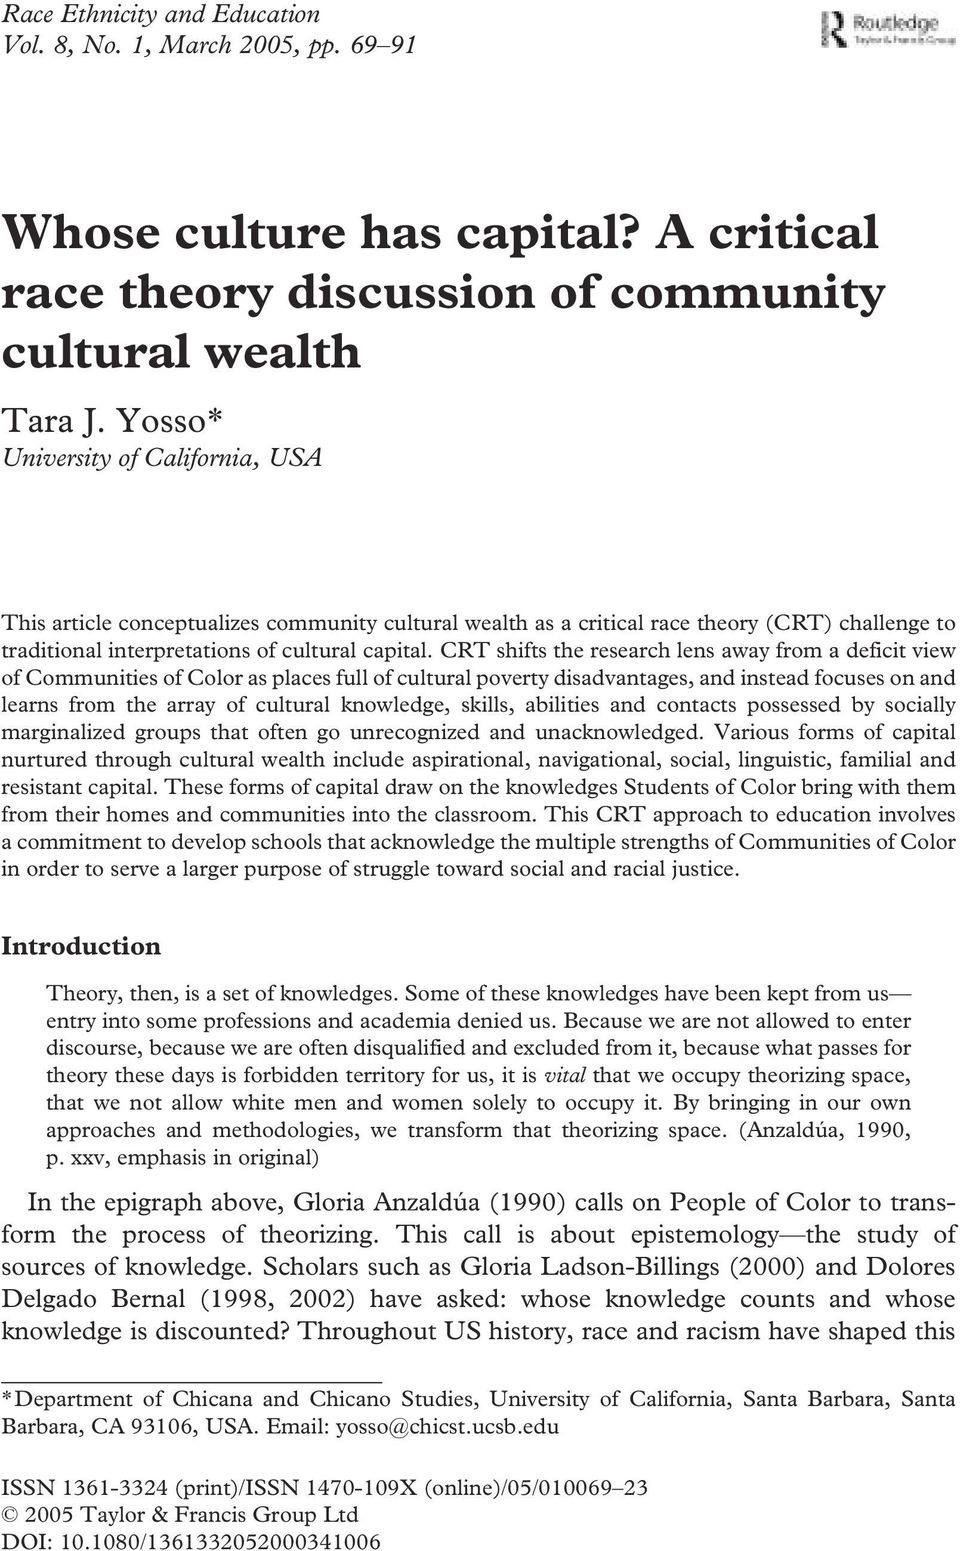 edu Ethnicity & and Article Francis (print)/1470-109x 2005 and Group Ltd Education Ltd (online) This article conceptualizes community cultural wealth as a critical race theory (CRT) challenge to